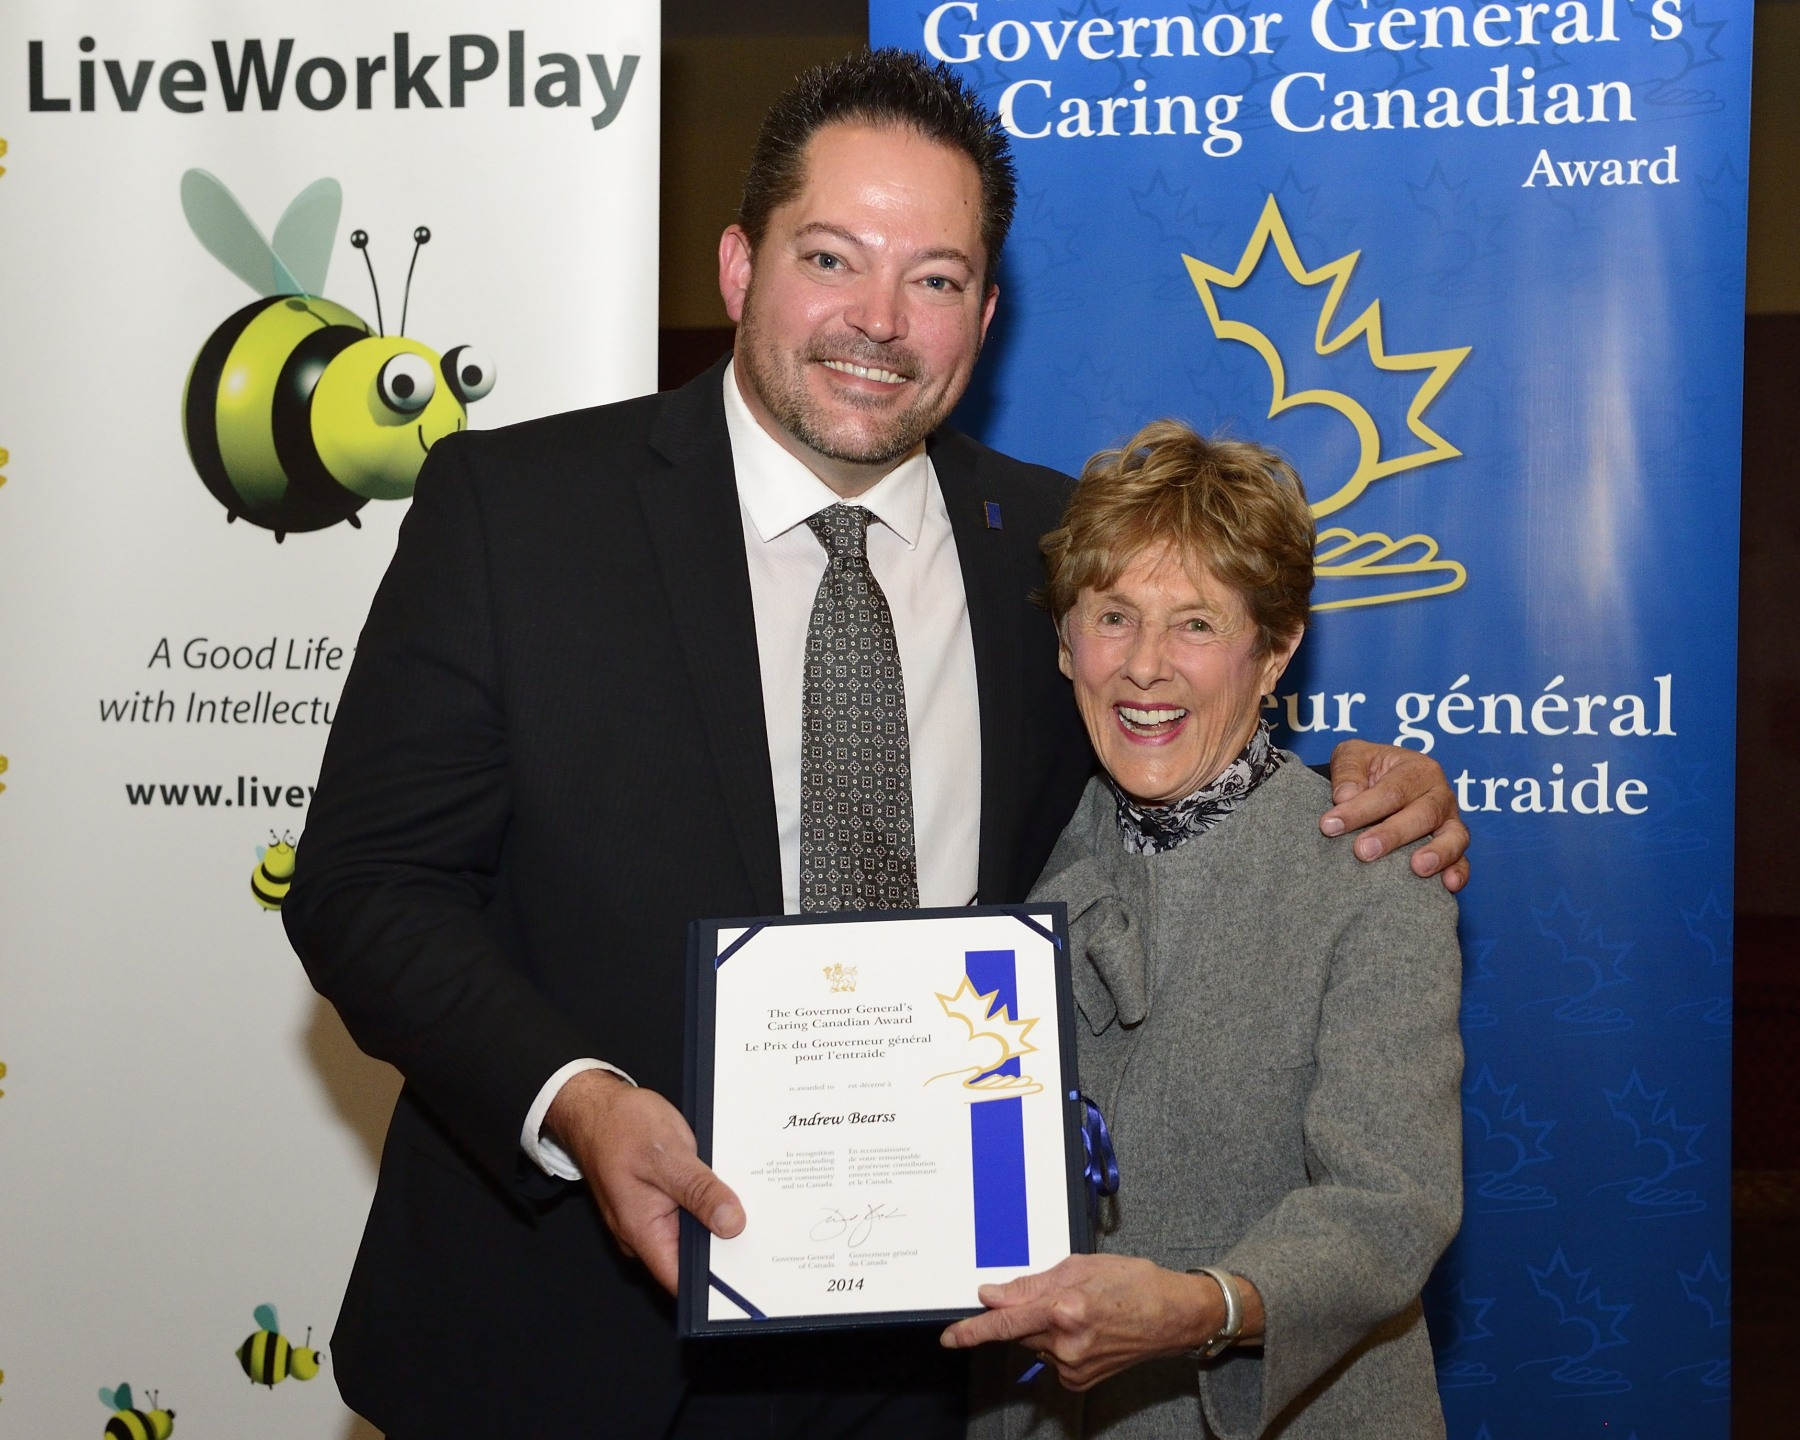 Her Excellency presented Mr. Andrew Bearss with a Caring Canadian Award. Mr. Bearss has volunteered tirelessly on behalf of LiveWorkPlay as an employer champion, encouraging business owners to hire people with intellectual disabilities. From his efforts alone, numerous individuals with limited prospects for employment are now happily working and contributing to the community.